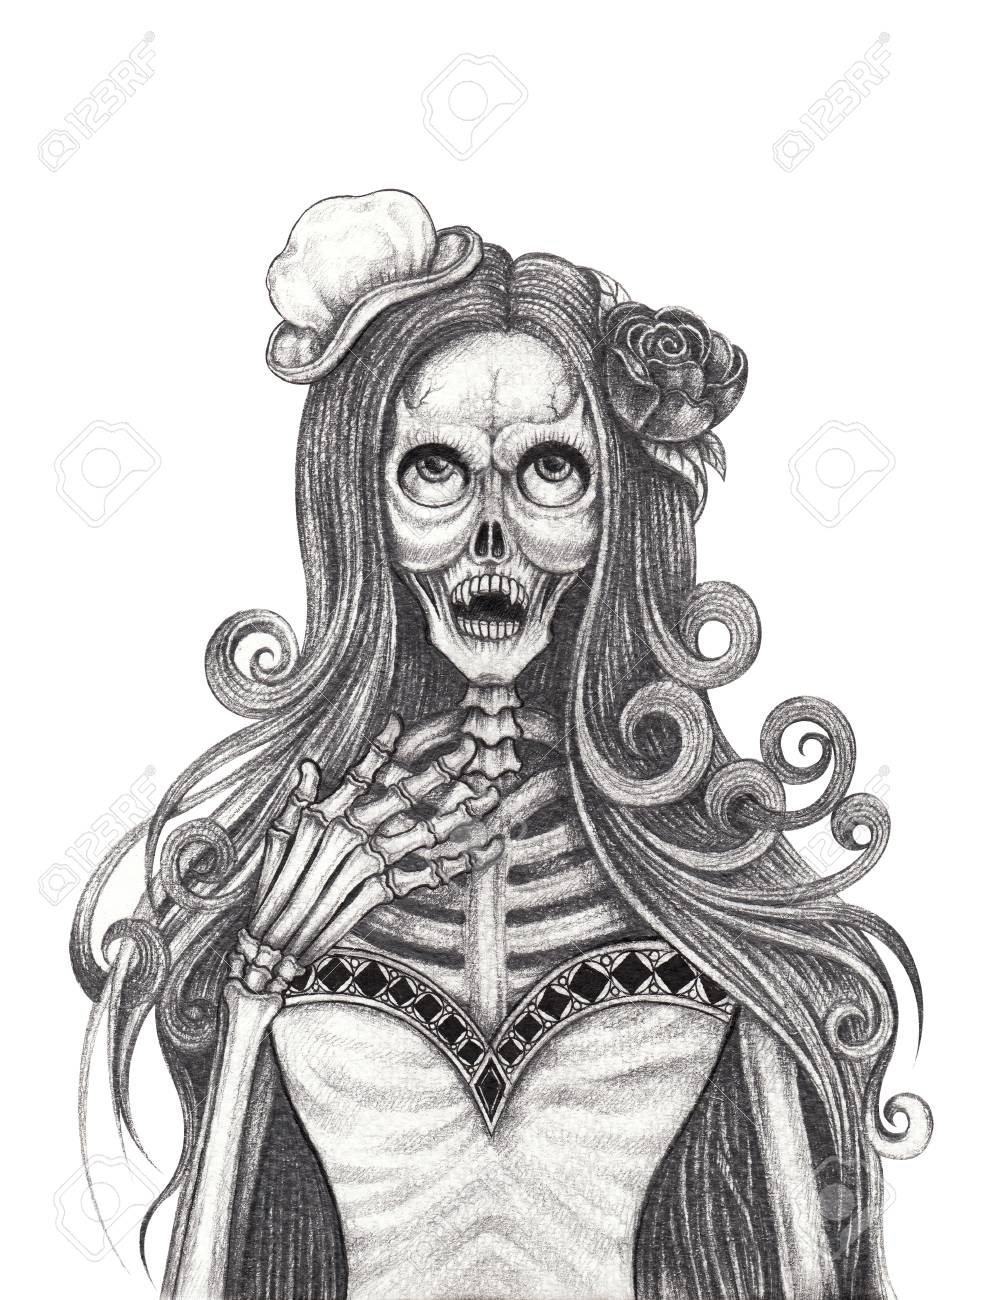 Art vampire skull tattoo hand pencil drawing on paper stock photo 109134914